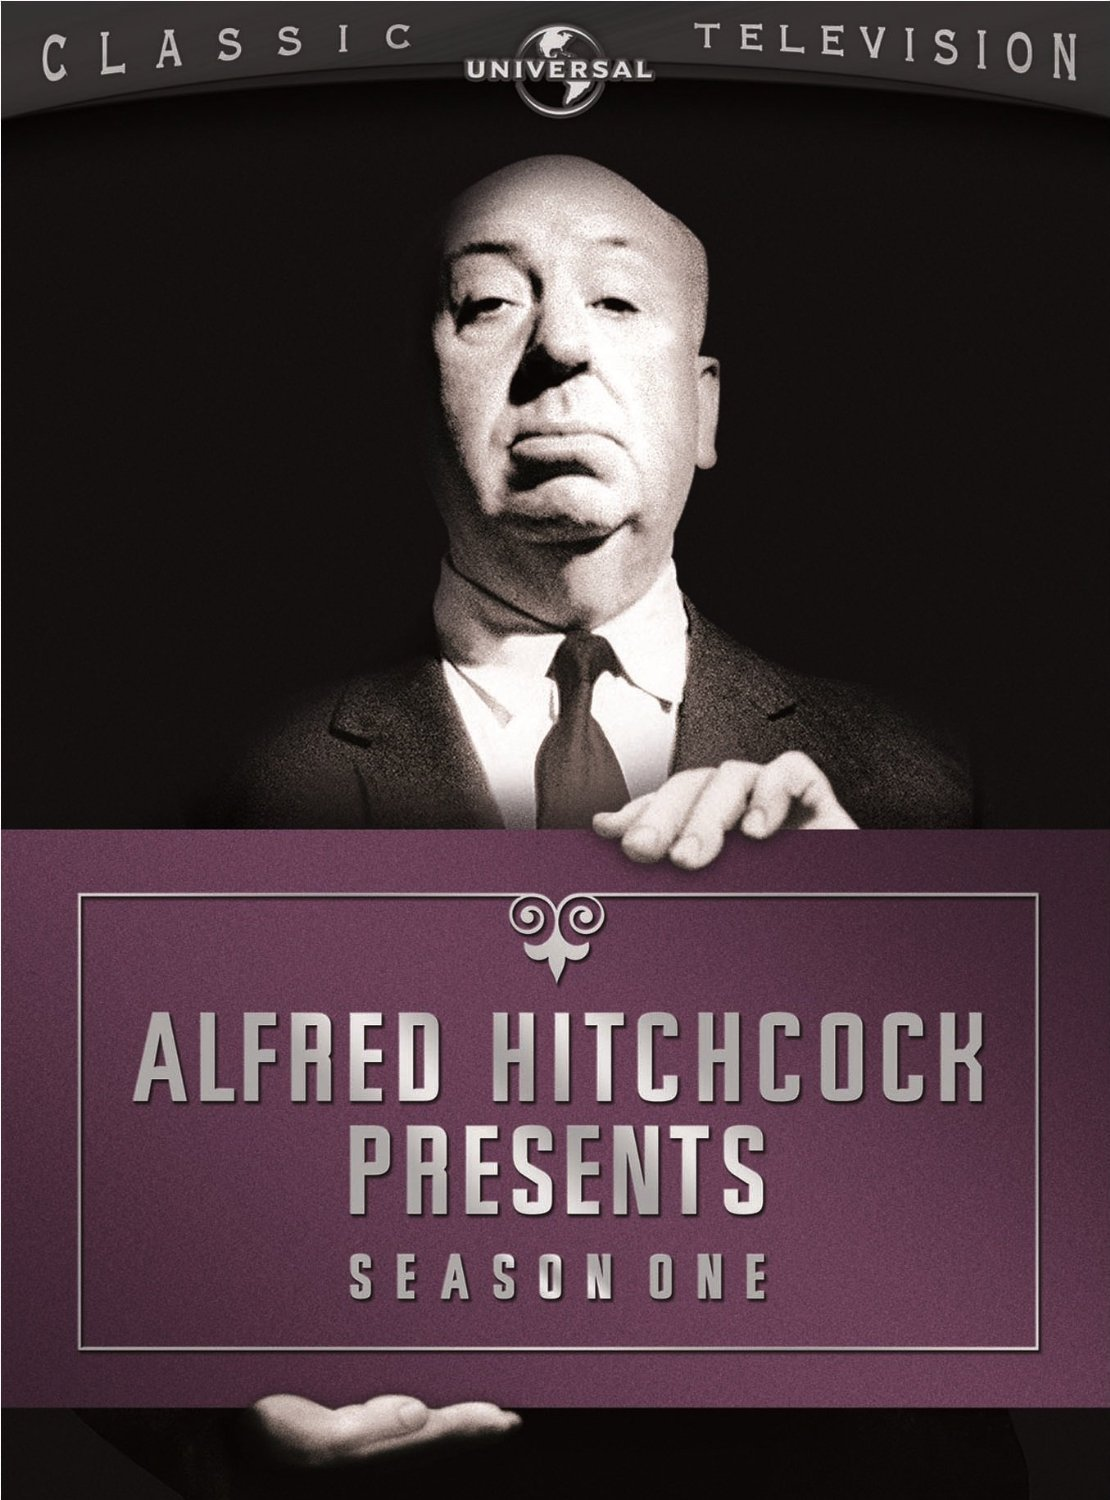 Alfred Hitchcock Presents: Season One (DVD, 2005, 3-Disc Set)